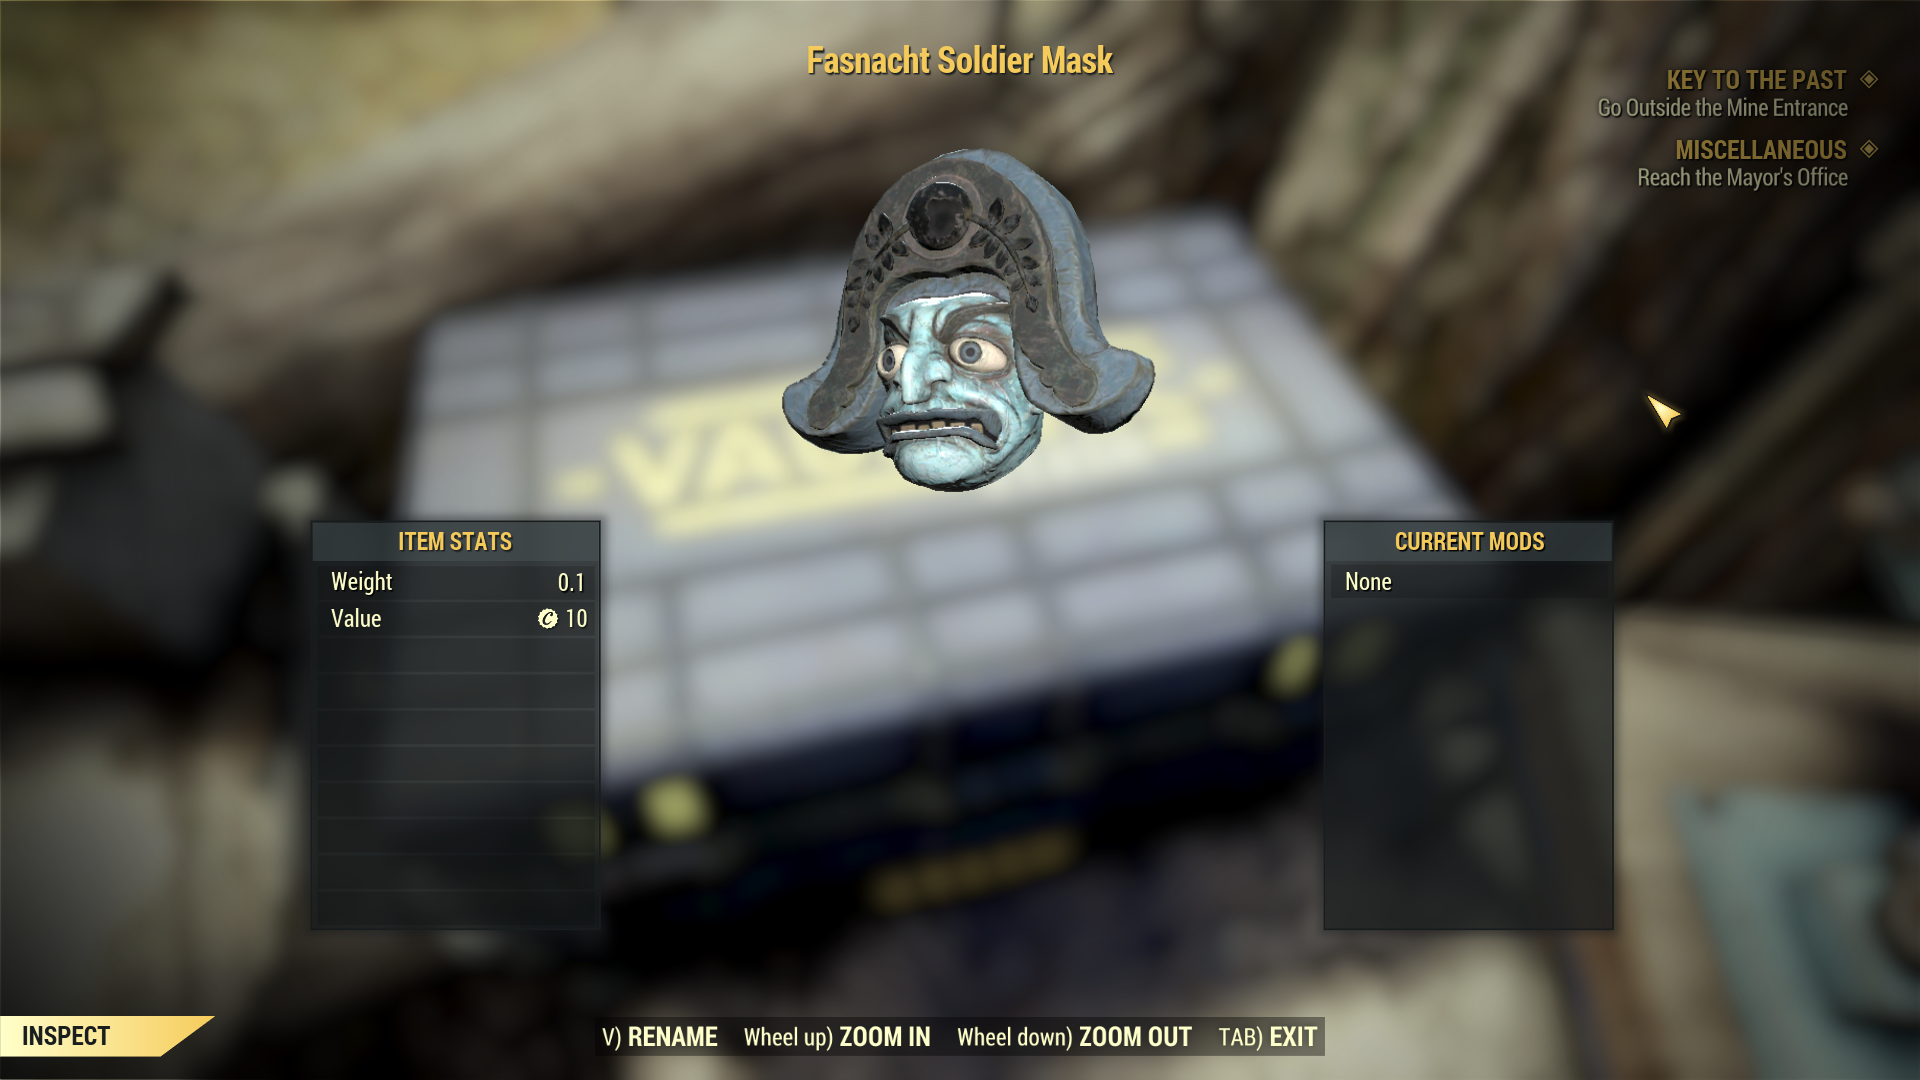 [Rare outfit] Fasnacht Soldier Mask